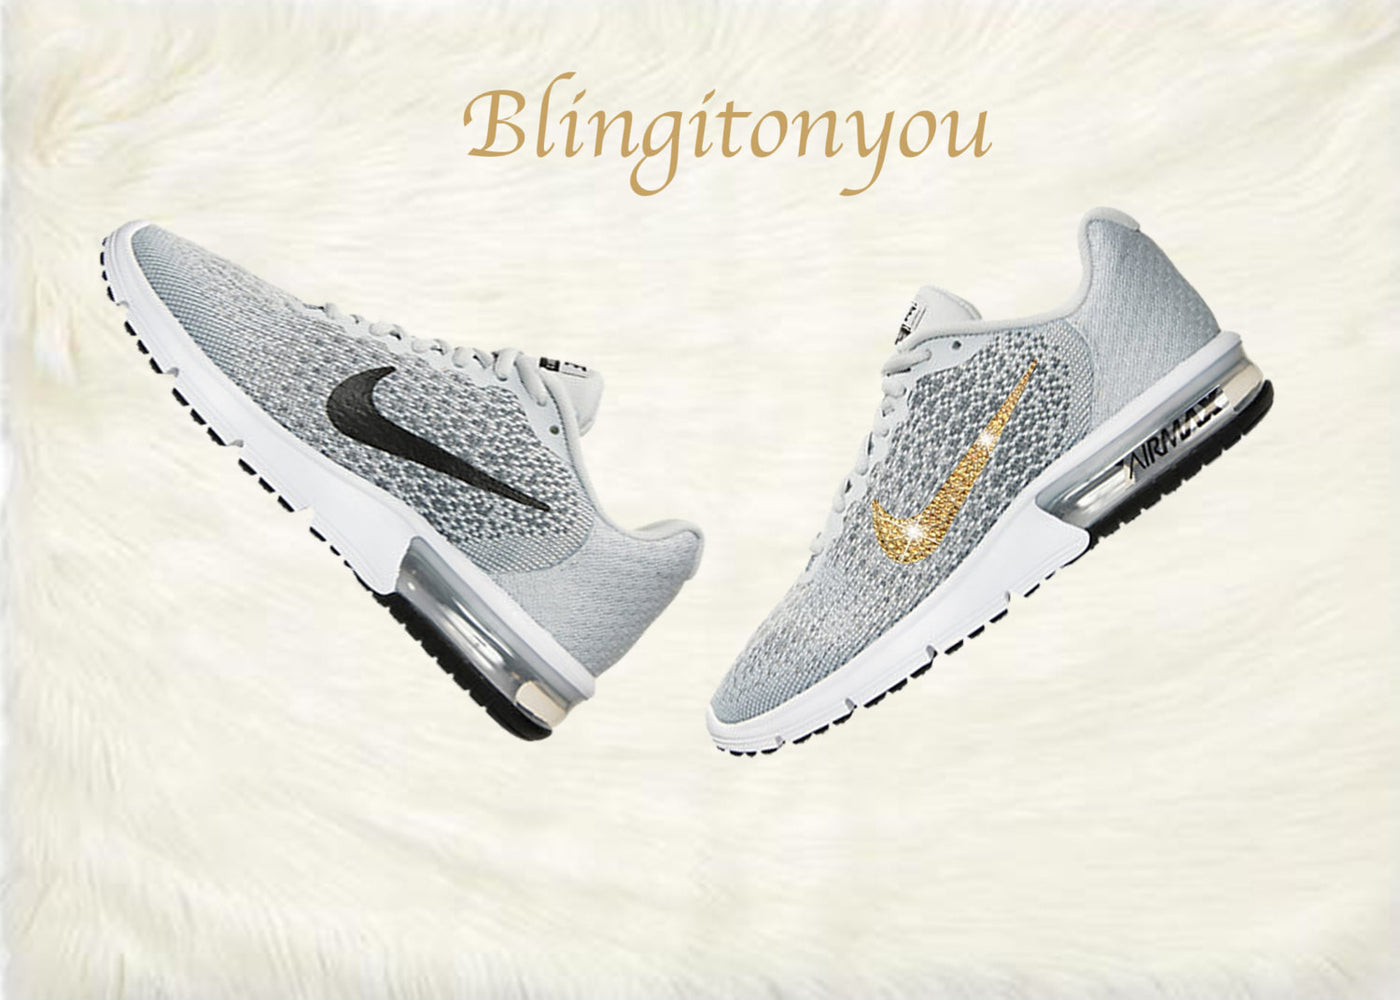 ... Swarovski Nike Air Max Sequent 2 Shoes Grey Blinged Out With Gold  Swarovski Crystals - Nike c1347b0e65